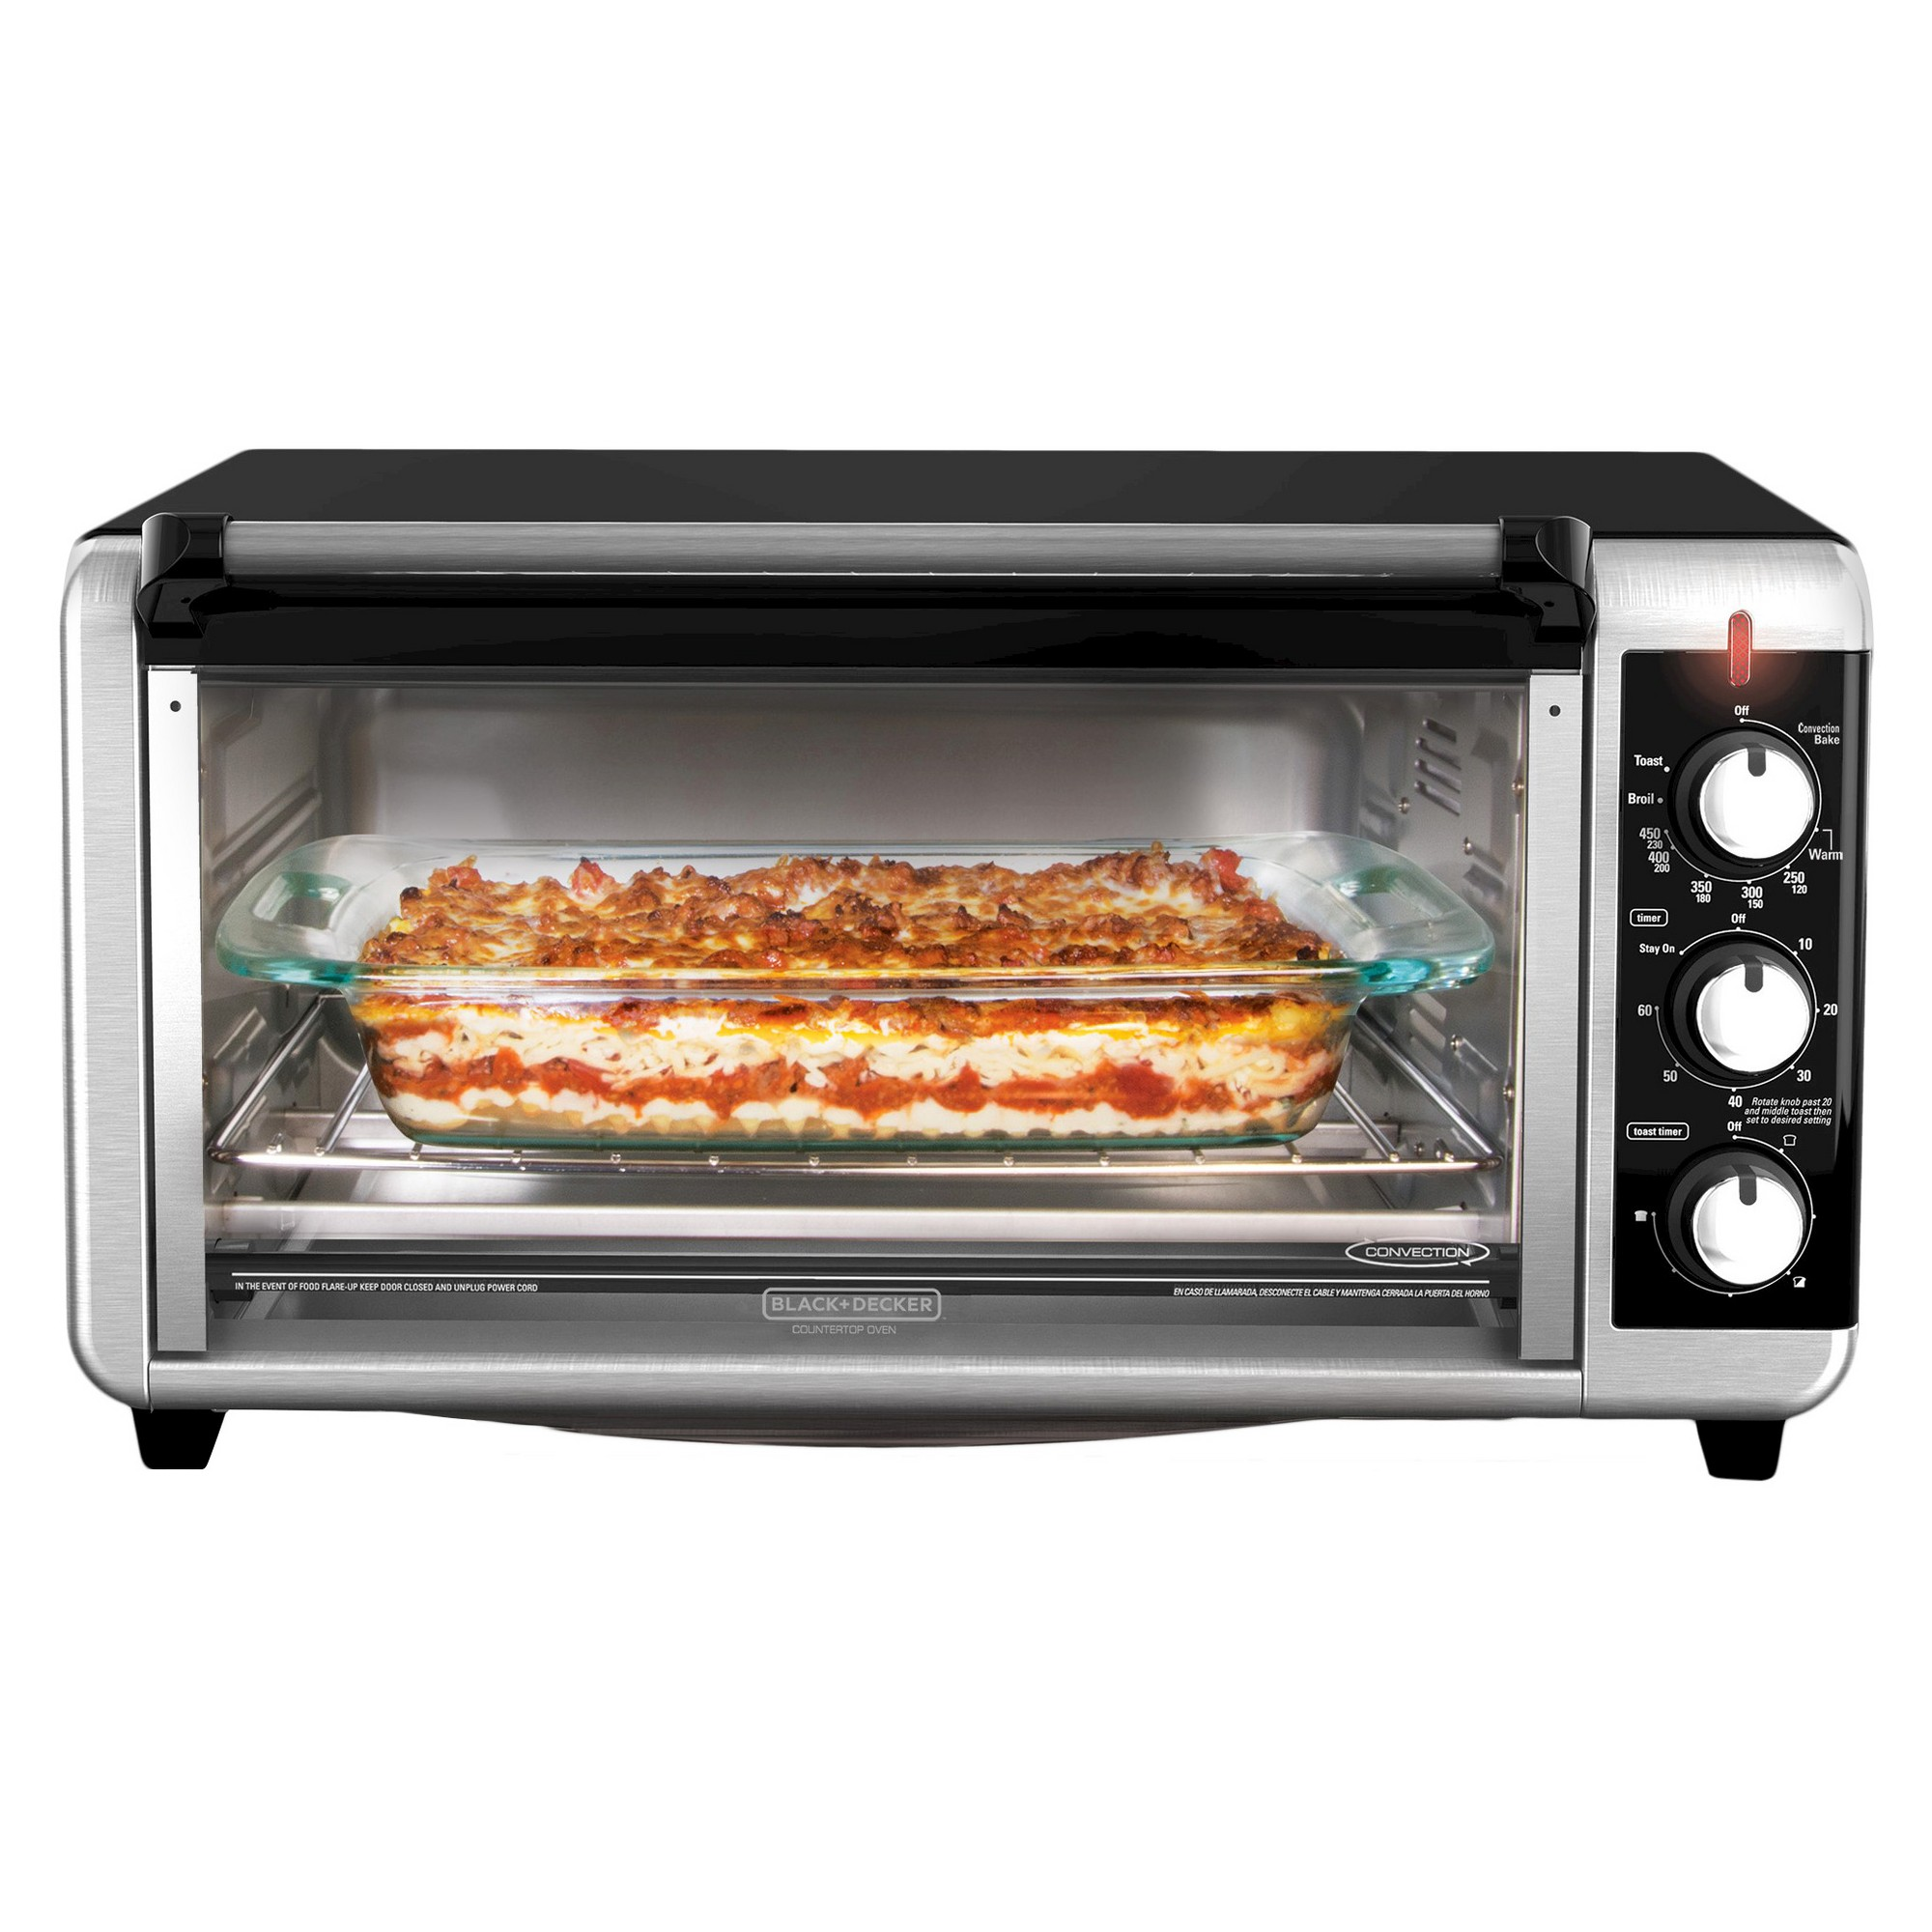 Black Decker Extra Wide Countertop Convection Oven Silver Countertop Convection Oven Convection Toaster Oven Toaster